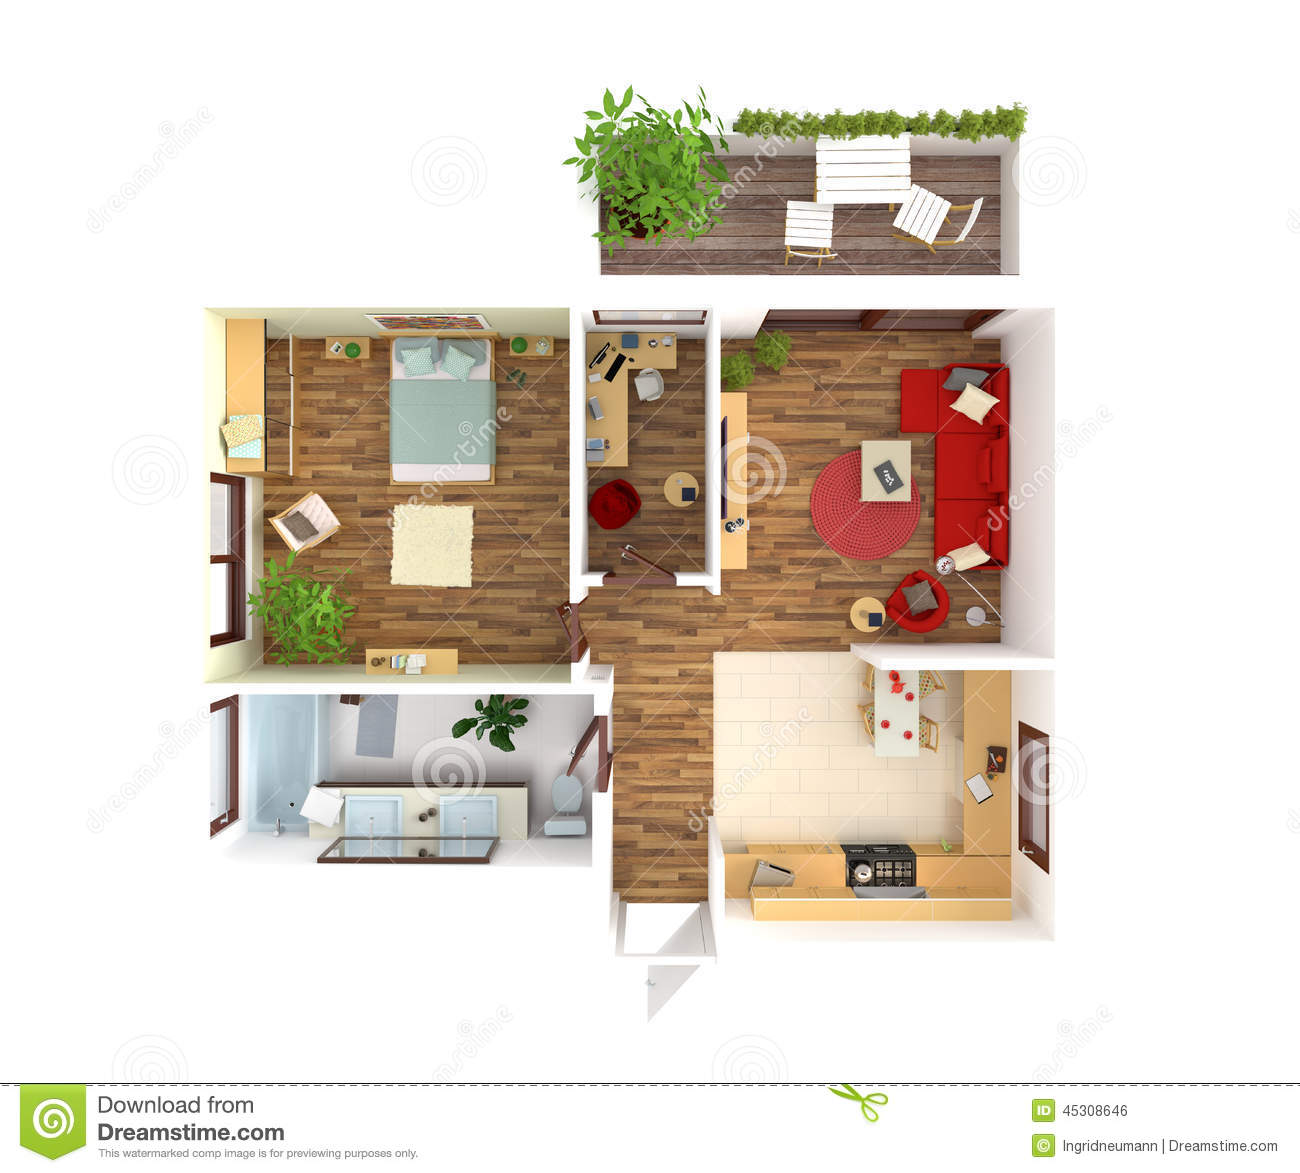 House plan top view interior design stock illustration for Home plans with a view